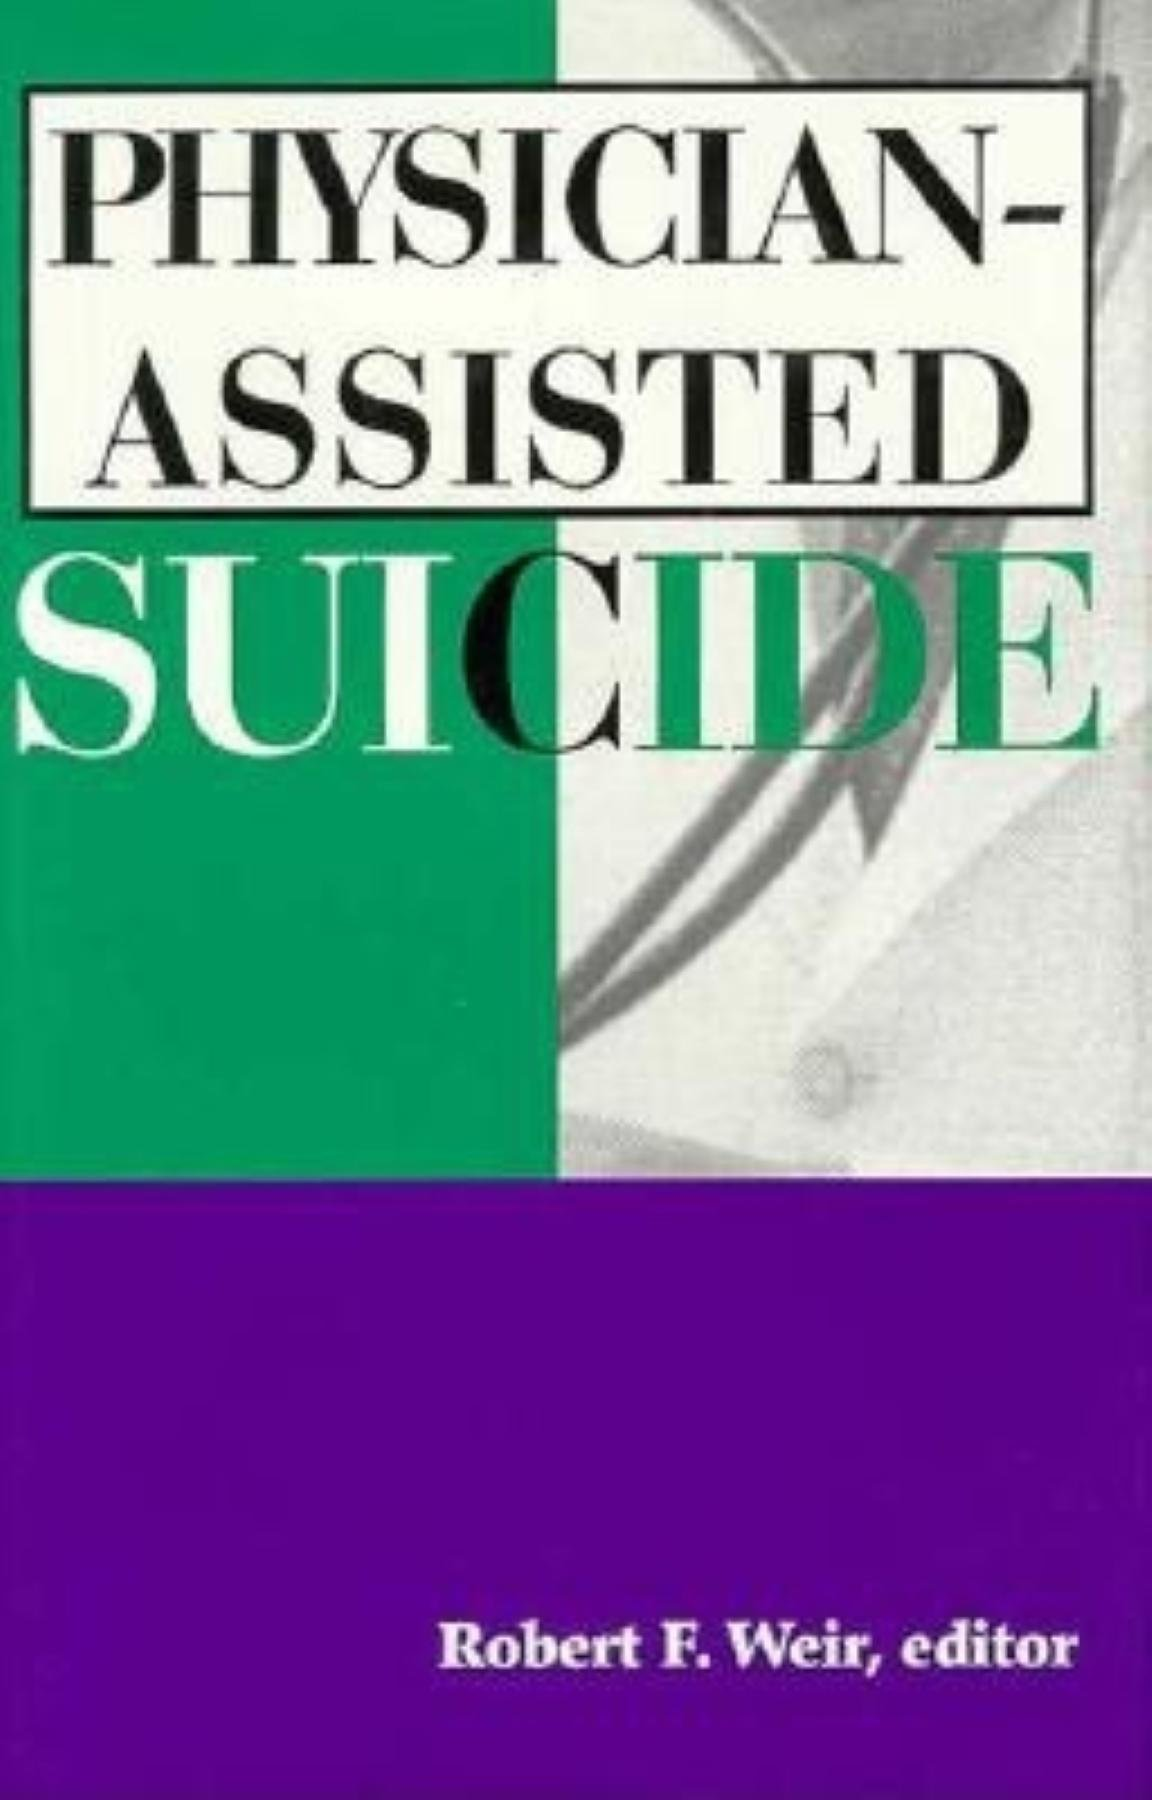 Essay On My Mother In English Physicianassisted Suicide Robert F Weir  Amazoncom Books My Mother Essay In English also College Essay Paper Format Physicianassisted Suicide Robert F Weir  Amazon  Living A Healthy Lifestyle Essay